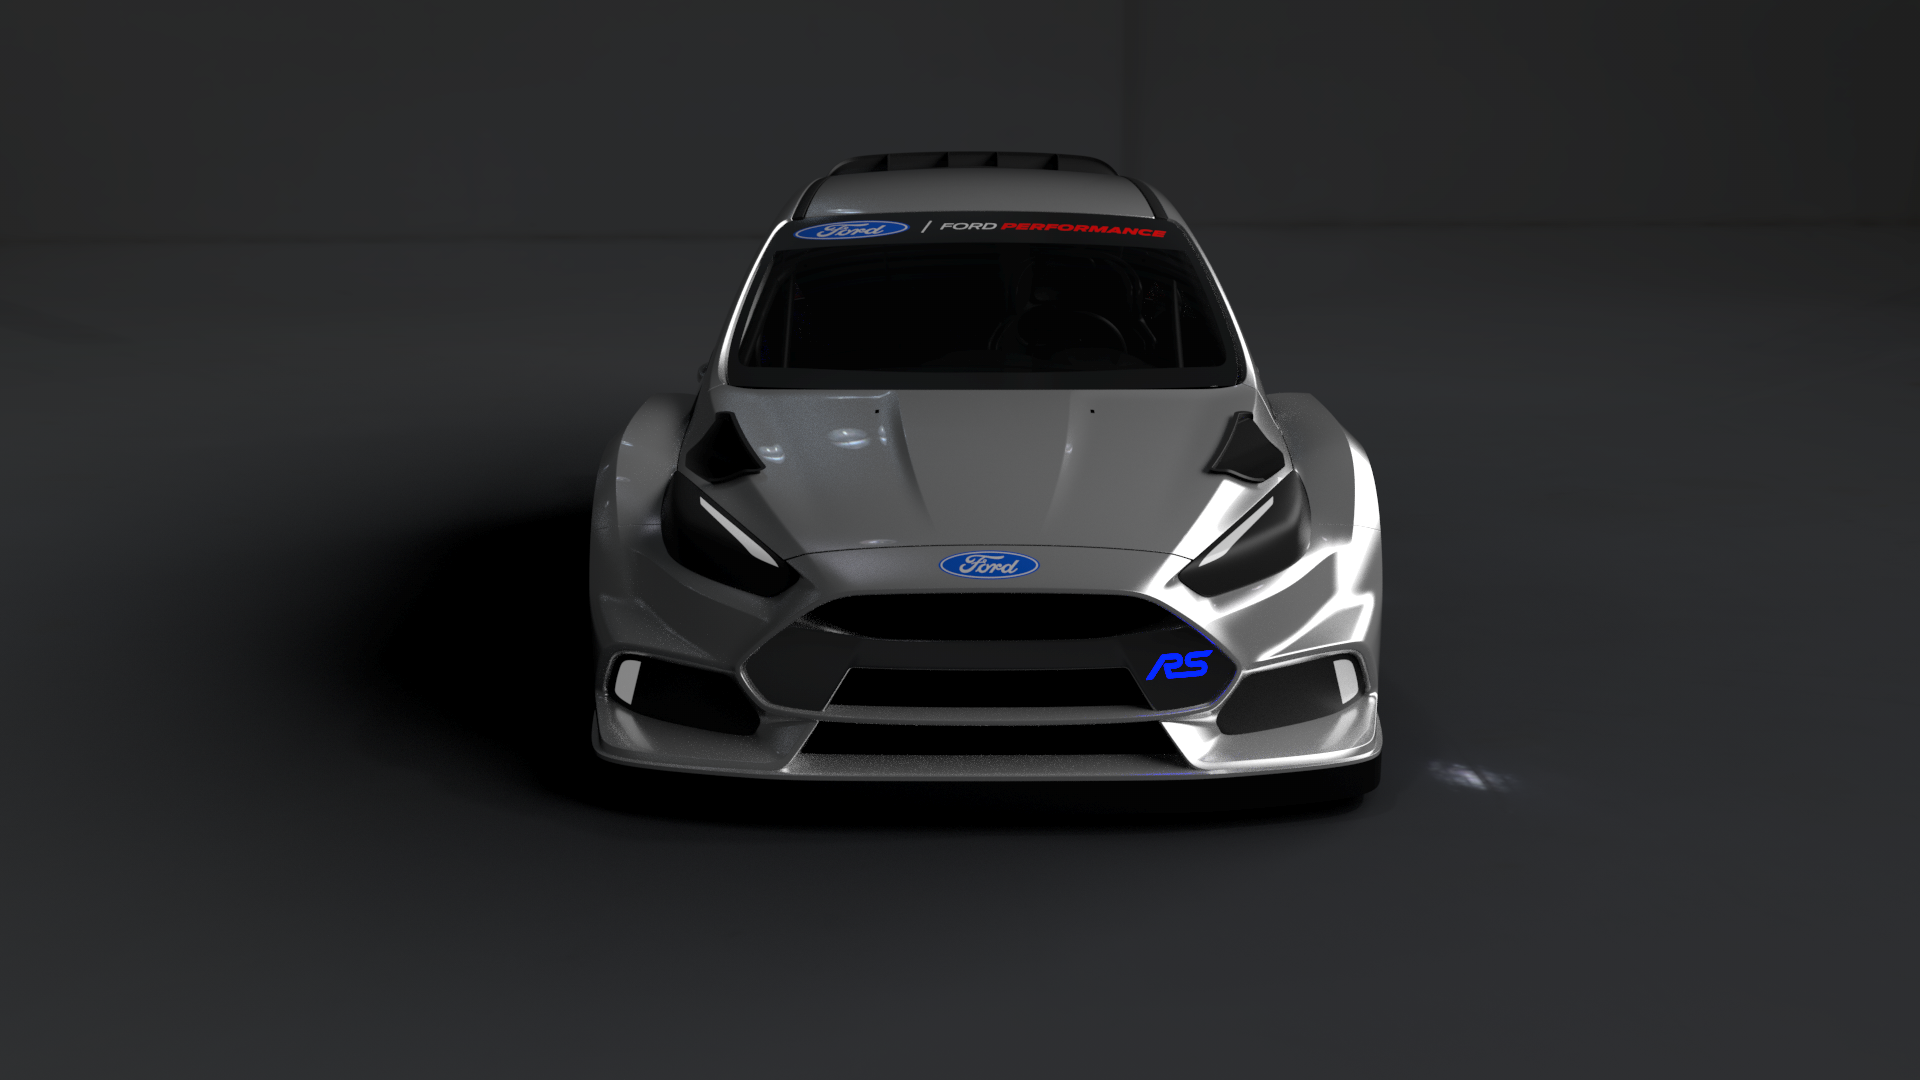 2016 Ford Focus RS Rallycross News and Information